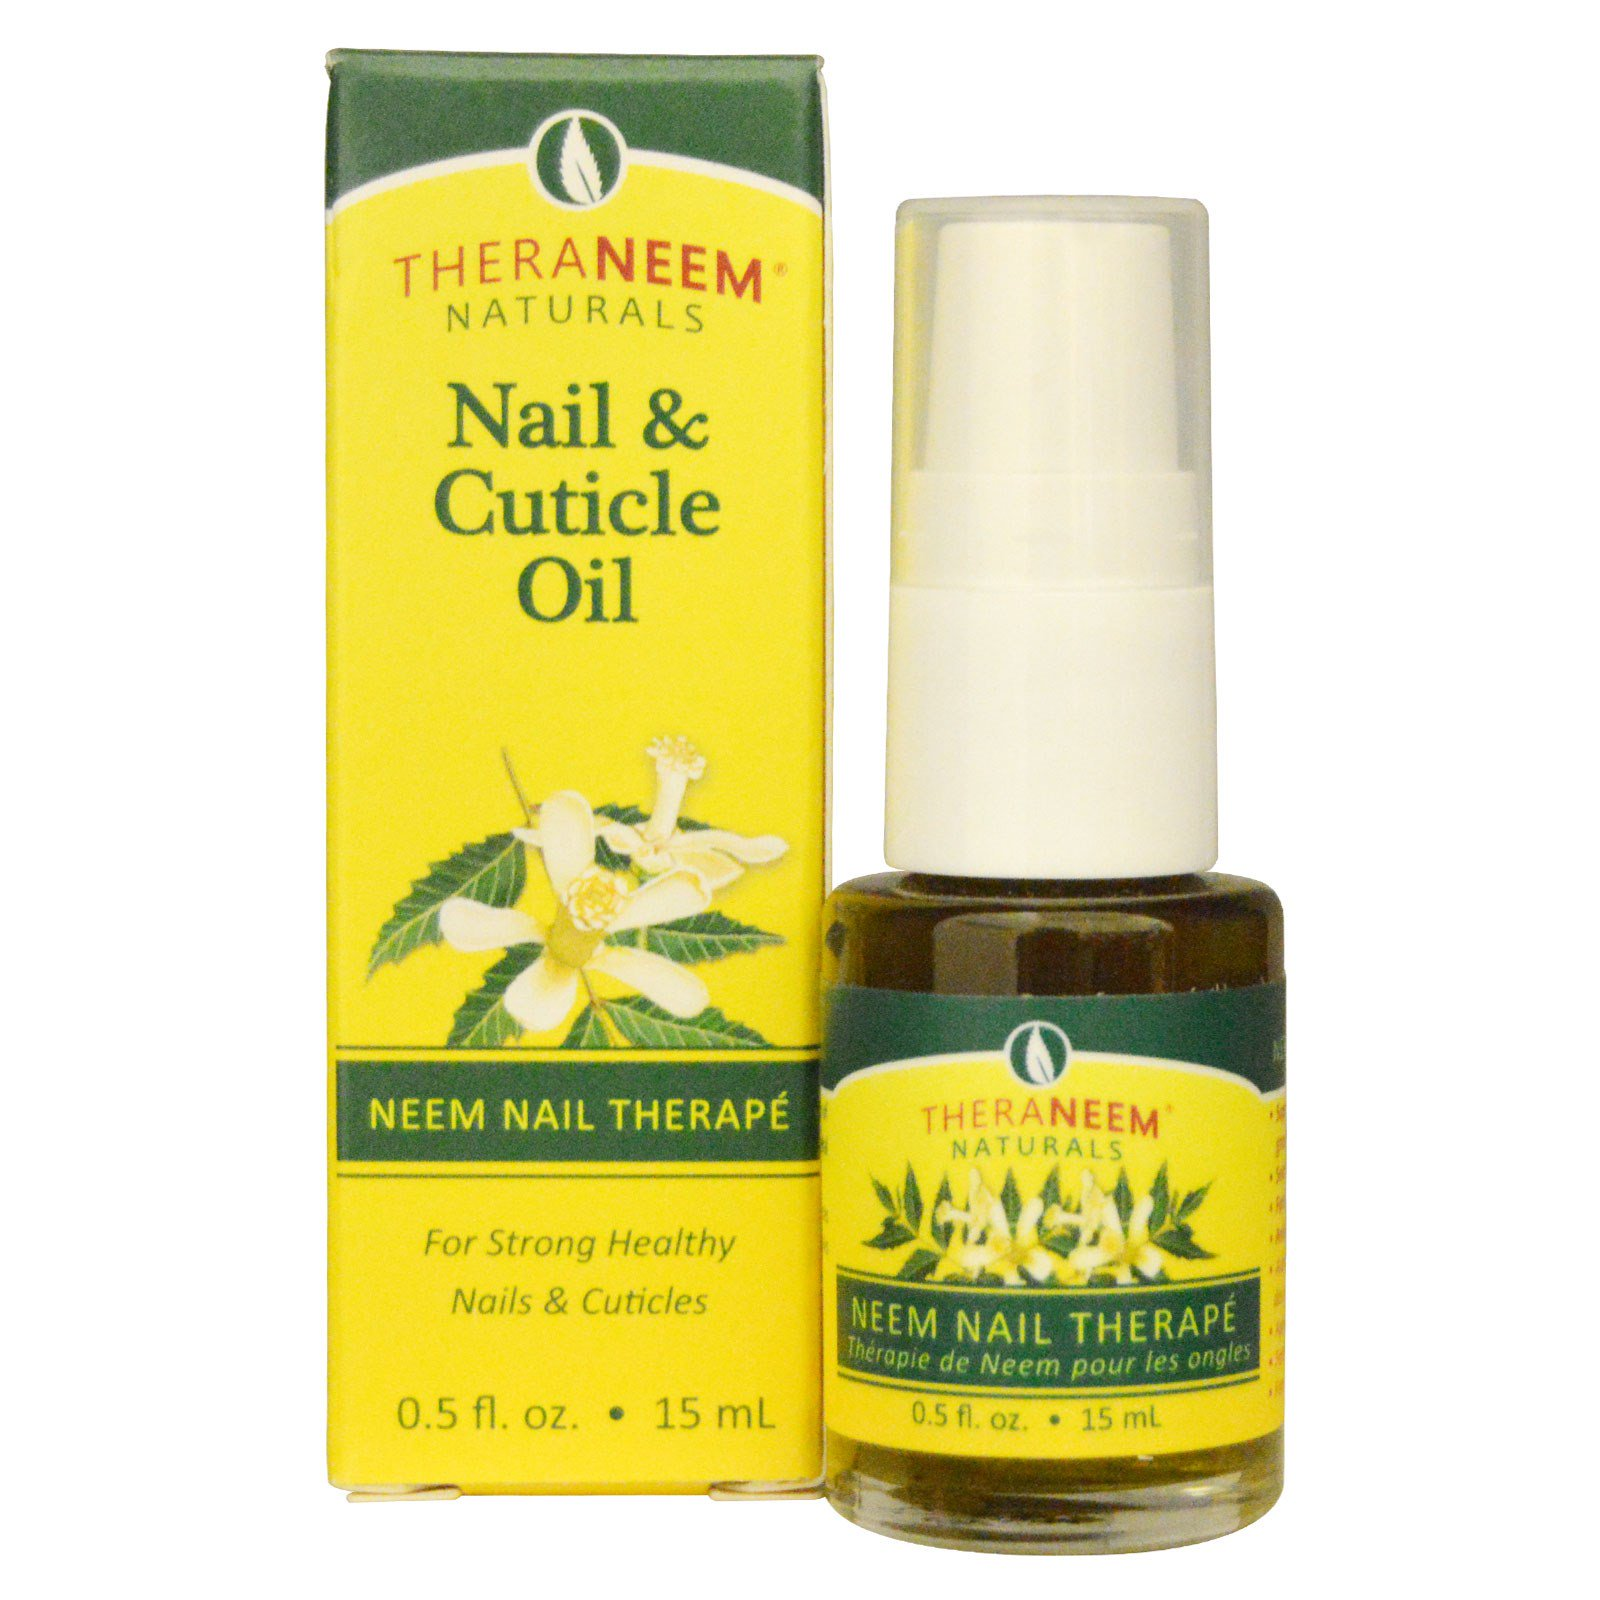 Organix South, TheraNeem Naturals, Neem Nail Therapé, Nail & Cuticle ...